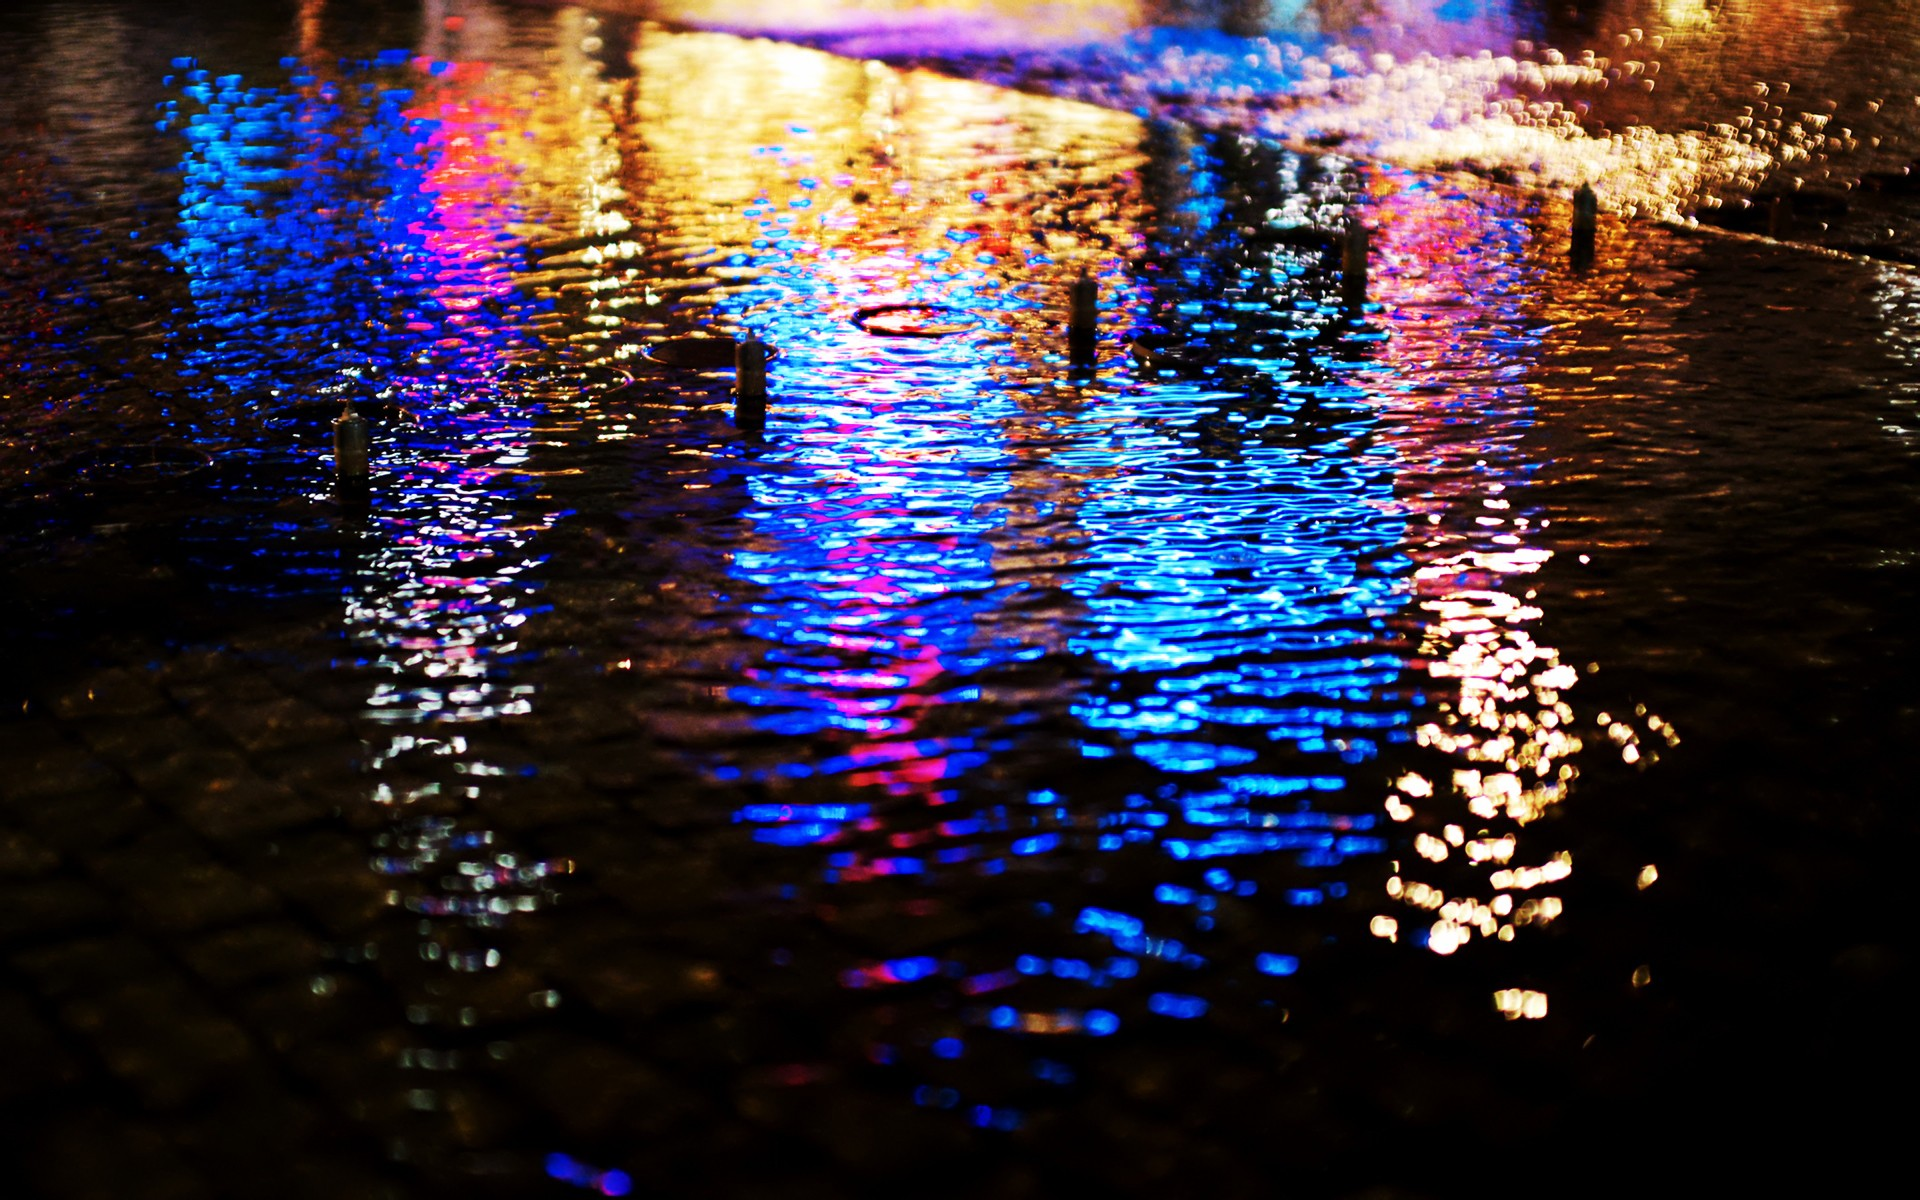 Streets Lights Wet Pavement Bokeh Reflections Wallpaper